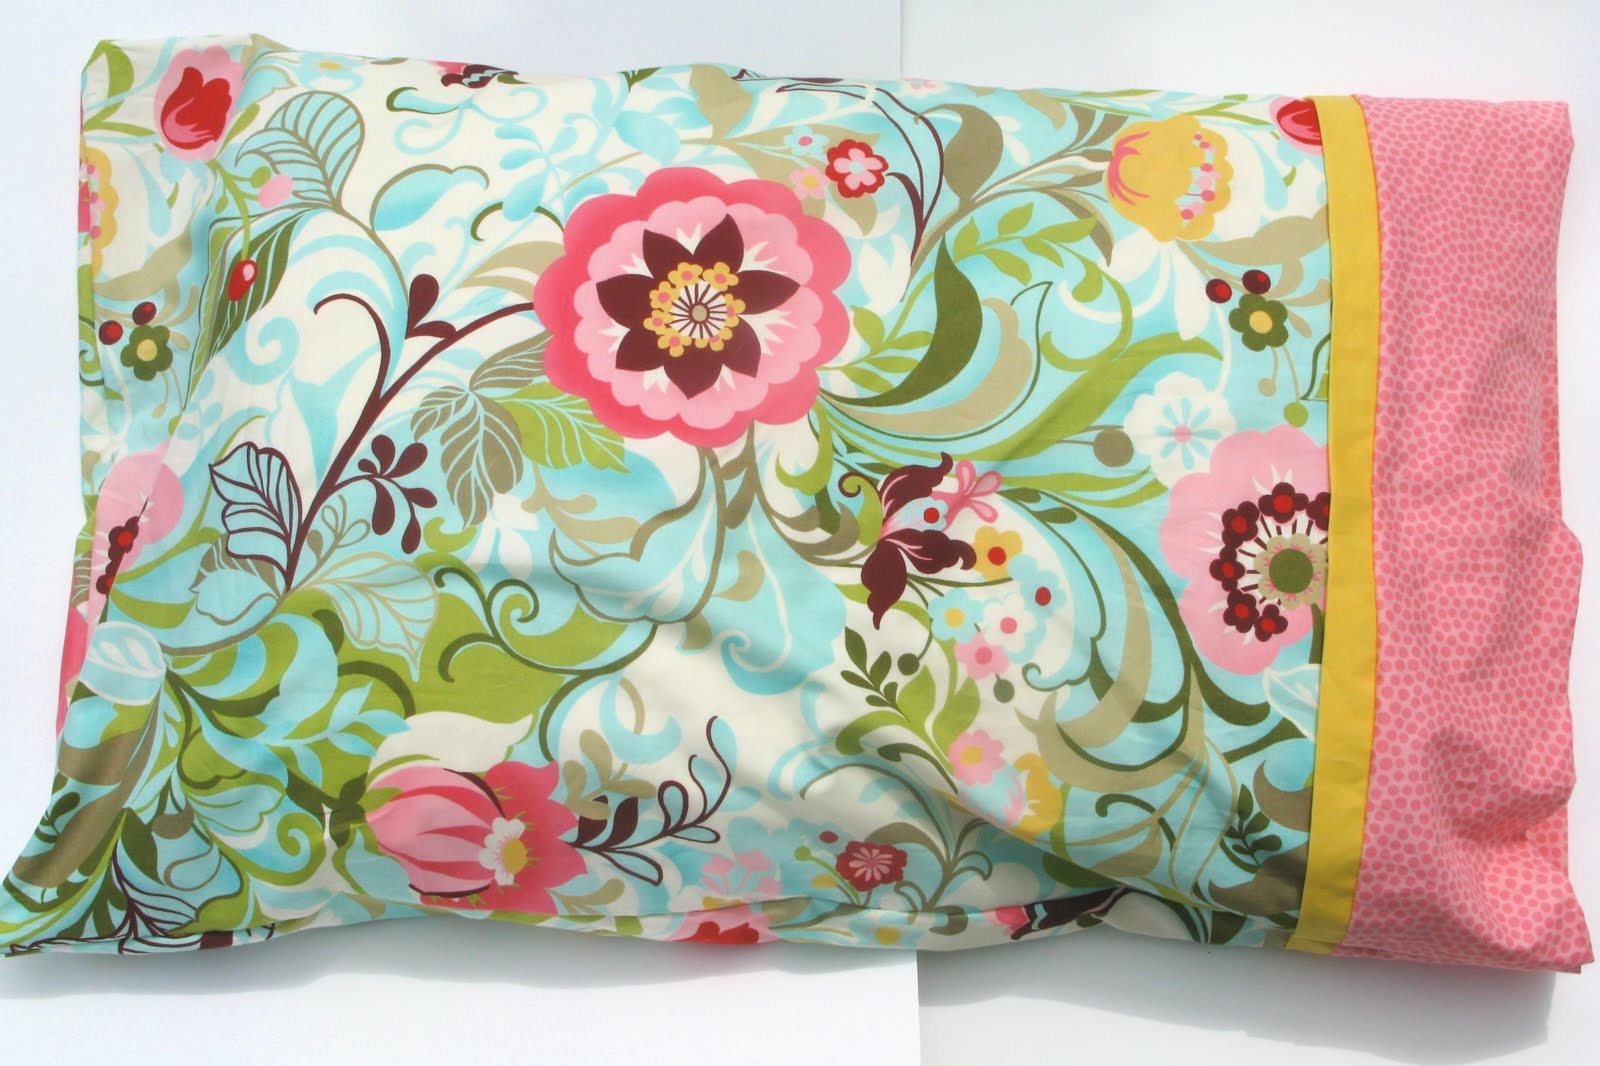 How To Make Cute Pillow Cases : DIY: Pillow Cases - Caroline Hulse Blog